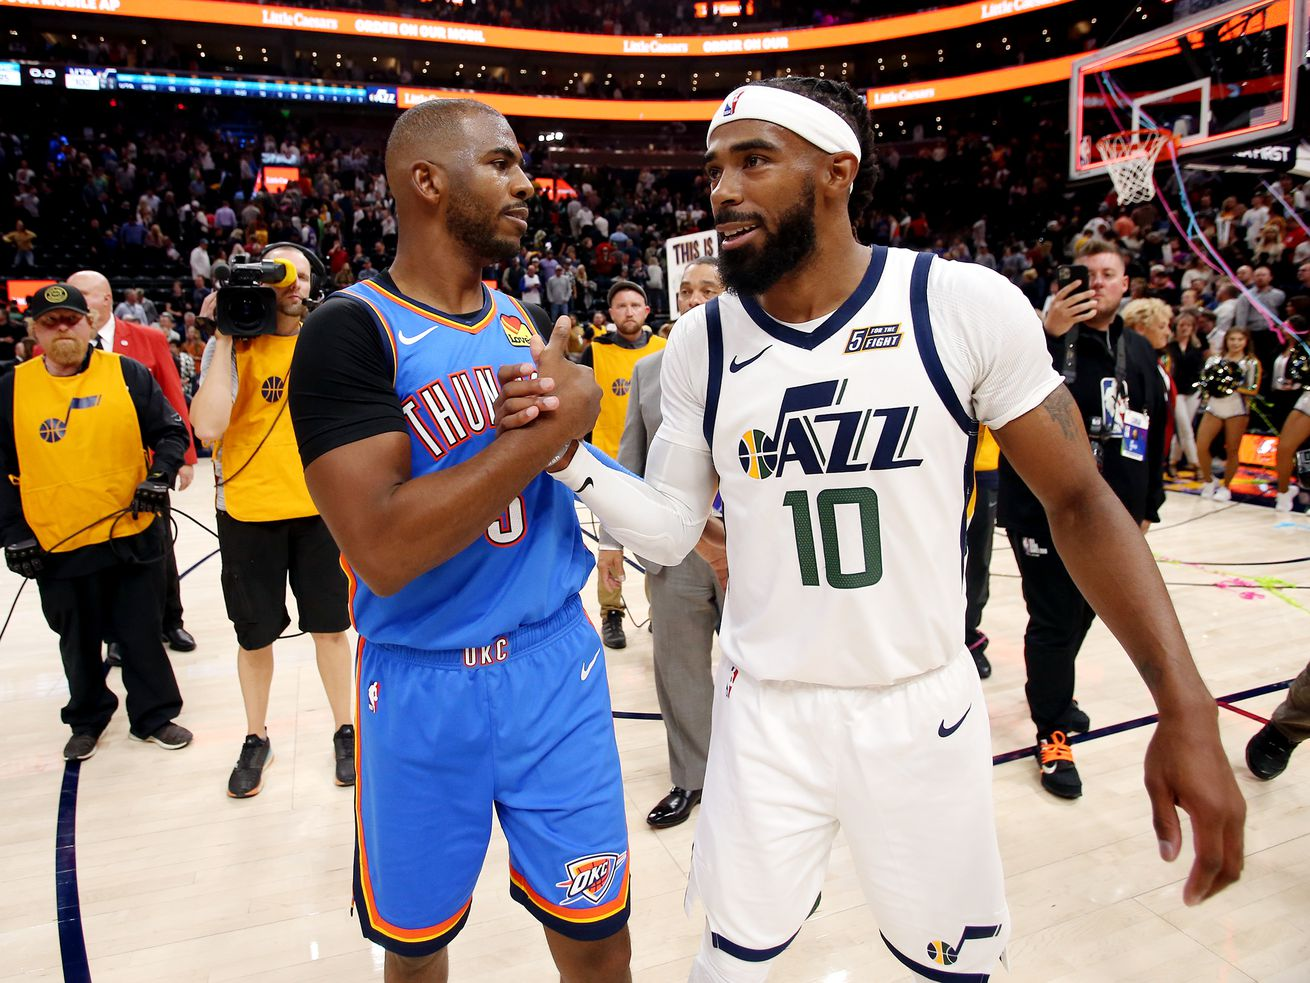 Oklahoma City Thunder guard Chris Paul (3) and Utah Jazz guard Mike Conley (10) talk after the game as the Jazz open the 2019/20 season with win over the Thunder at Vivint Smart Home Arena in Salt Lake City on Wednesday, Oct. 23, 2019. Utah won 100-95.